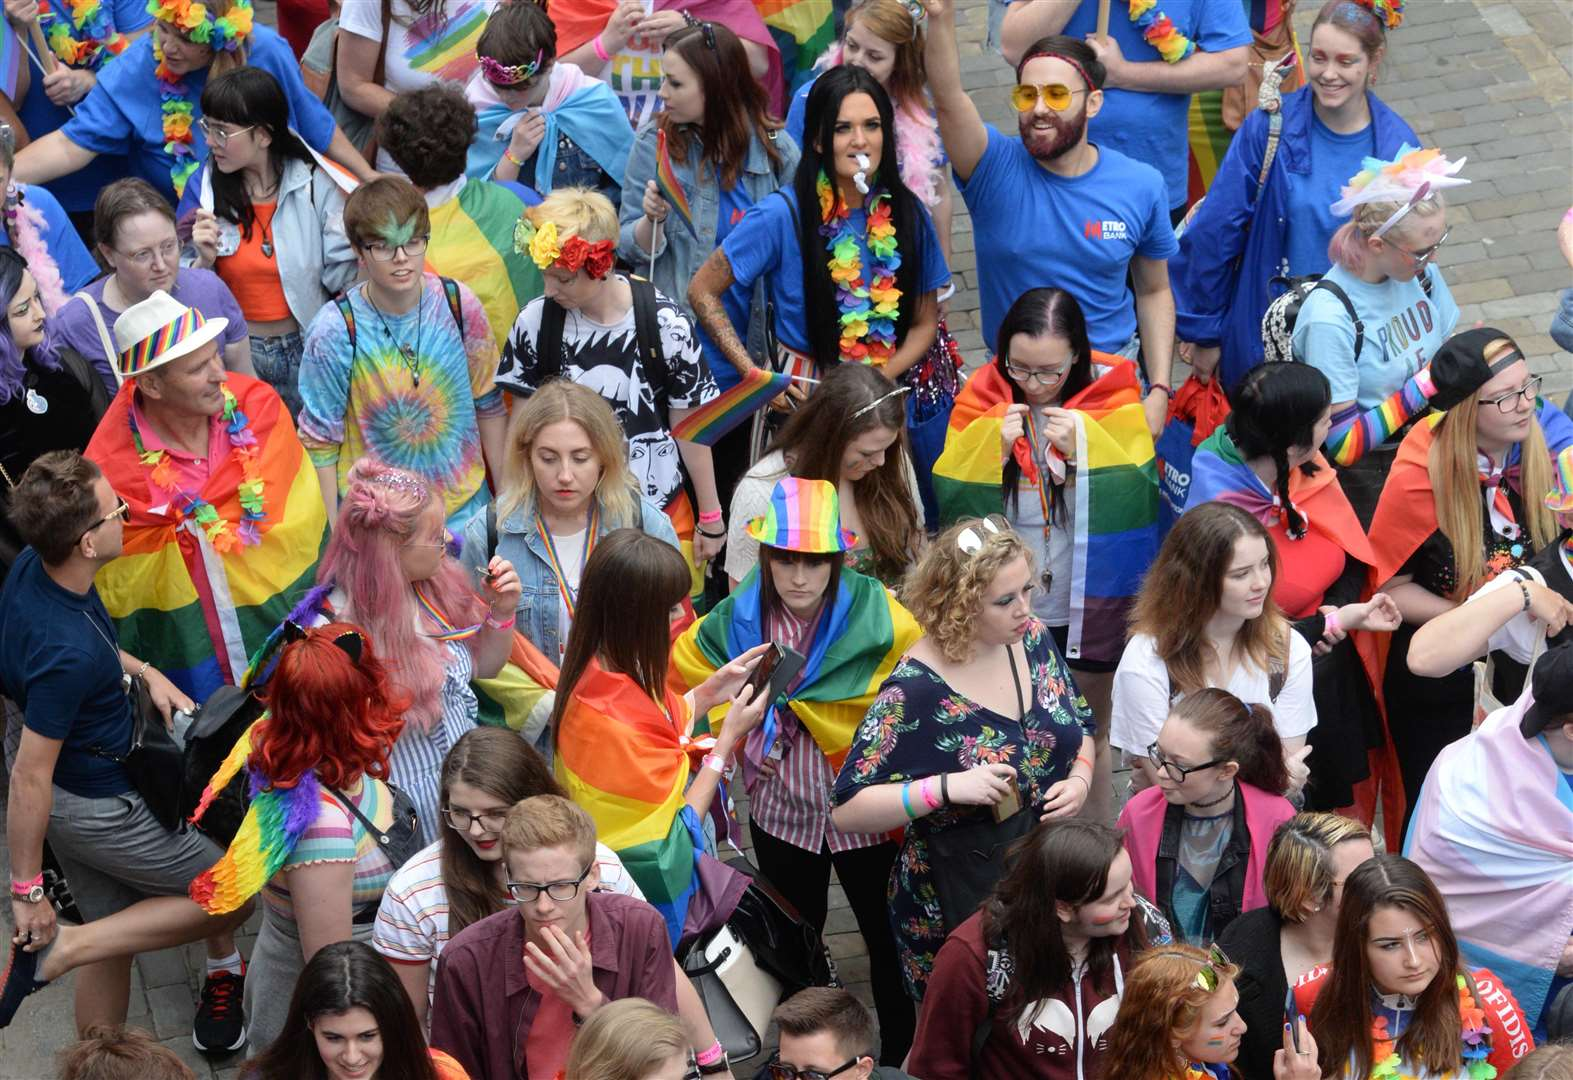 Plans afoot for Kent's newest Pride festival